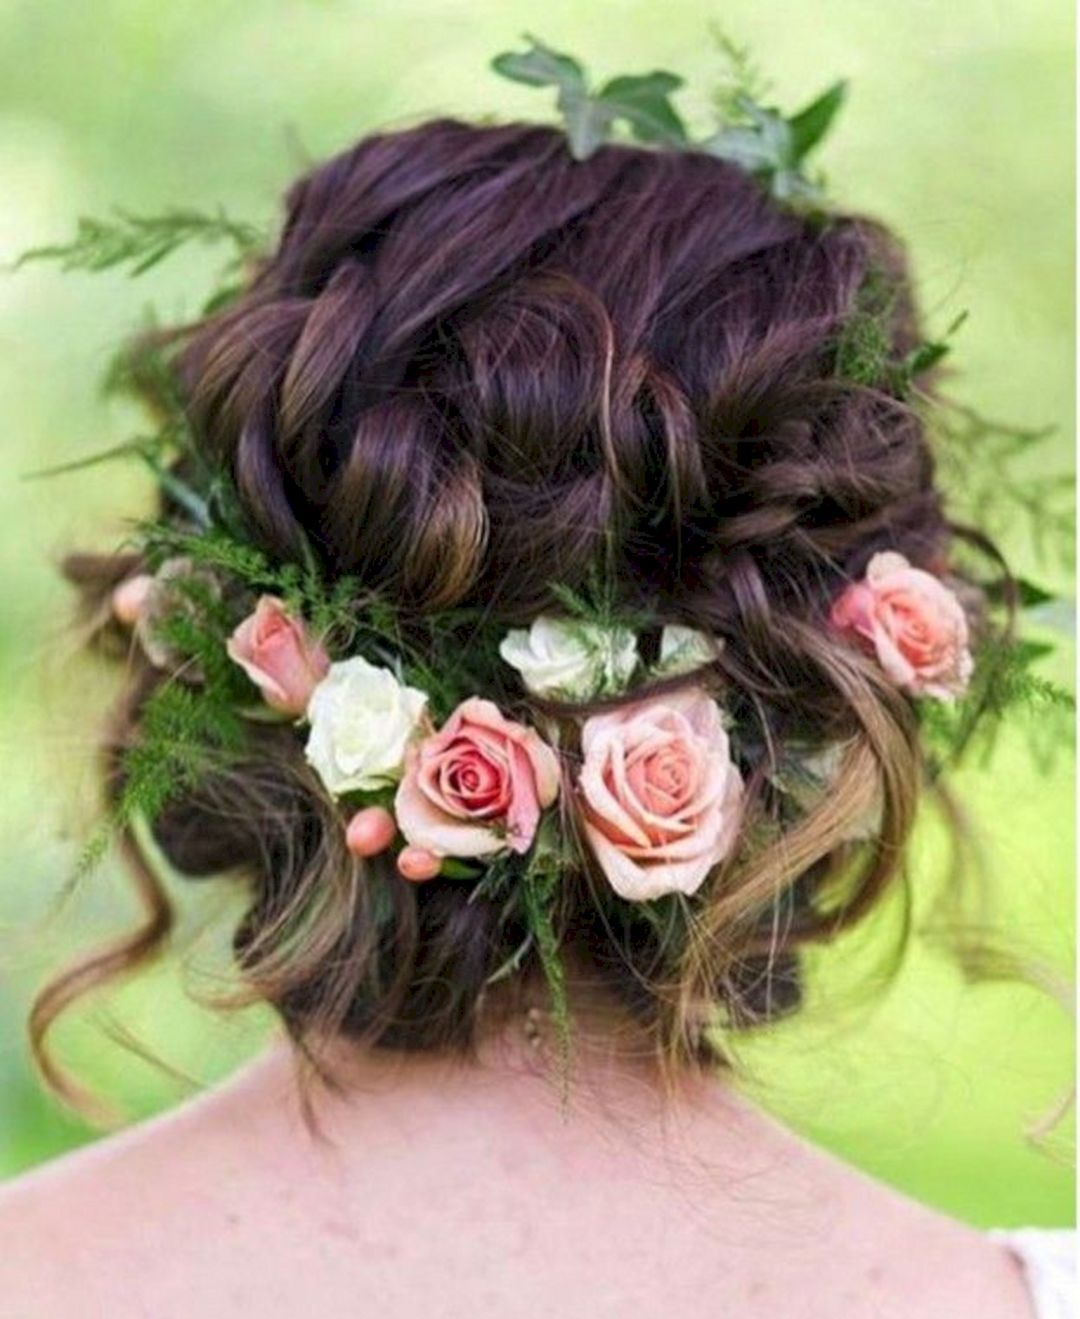 Awesome top 50 wedding short hairstyles with flower crown ideas awesome top 50 wedding short hairstyles with flower crown ideas httpsoosiletop 50 wedding short hairstyles with flower crown ideas 13131 izmirmasajfo